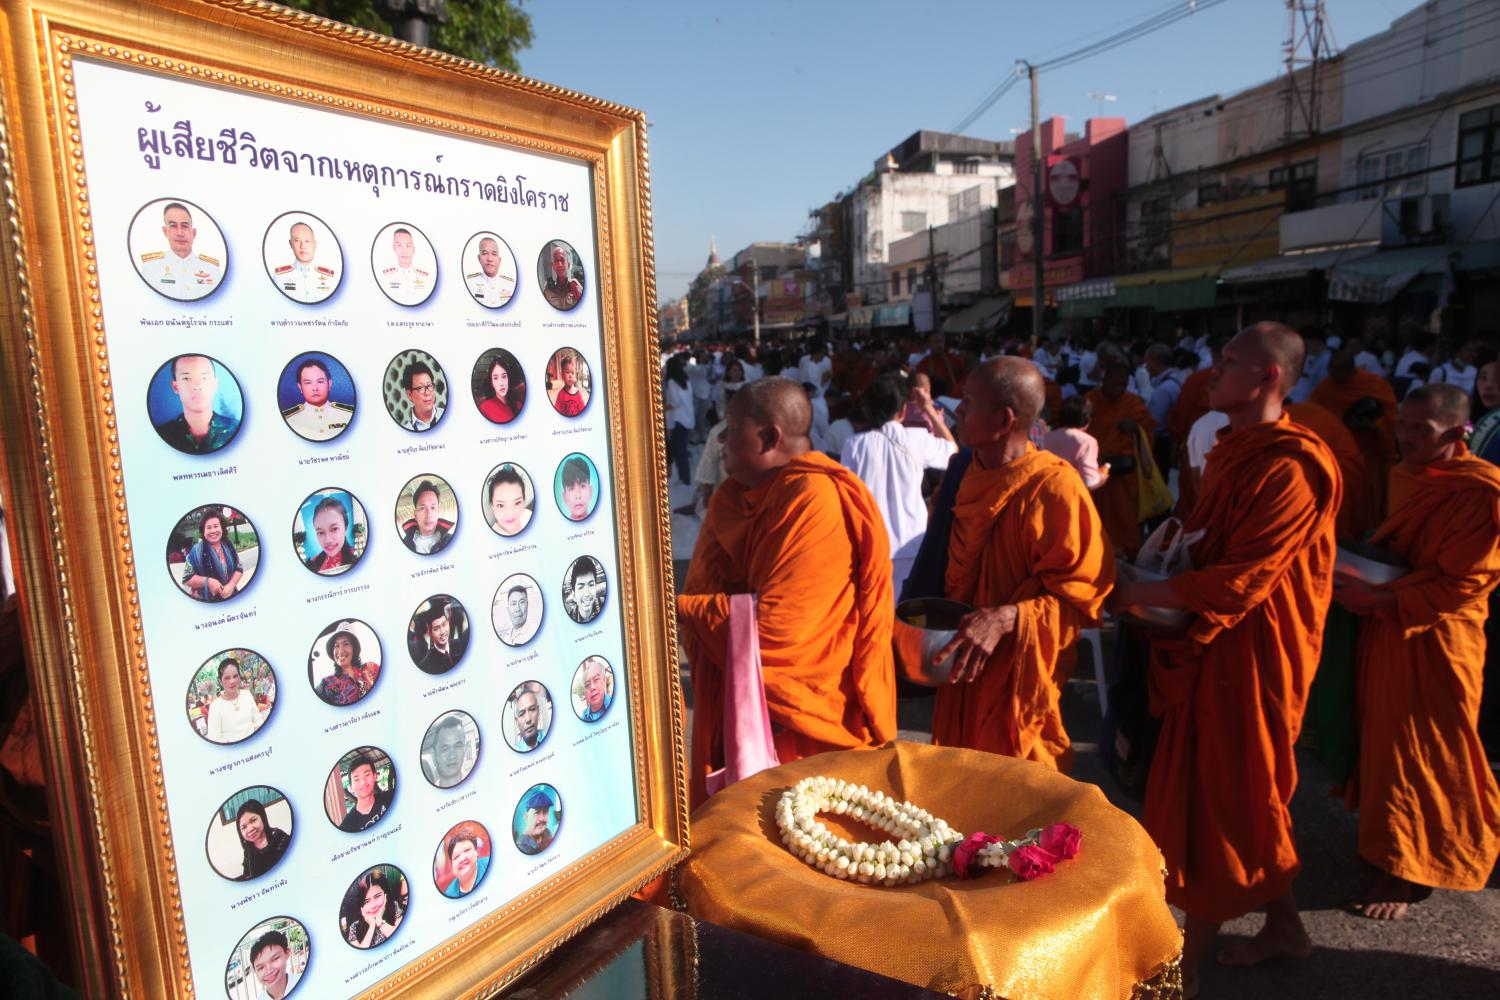 A merit-making ceremony is held in Nakhon Ratchasima on Saturday in honour of those killed at the mass shooting last weekend. (Photos by Apichart Jinakul)